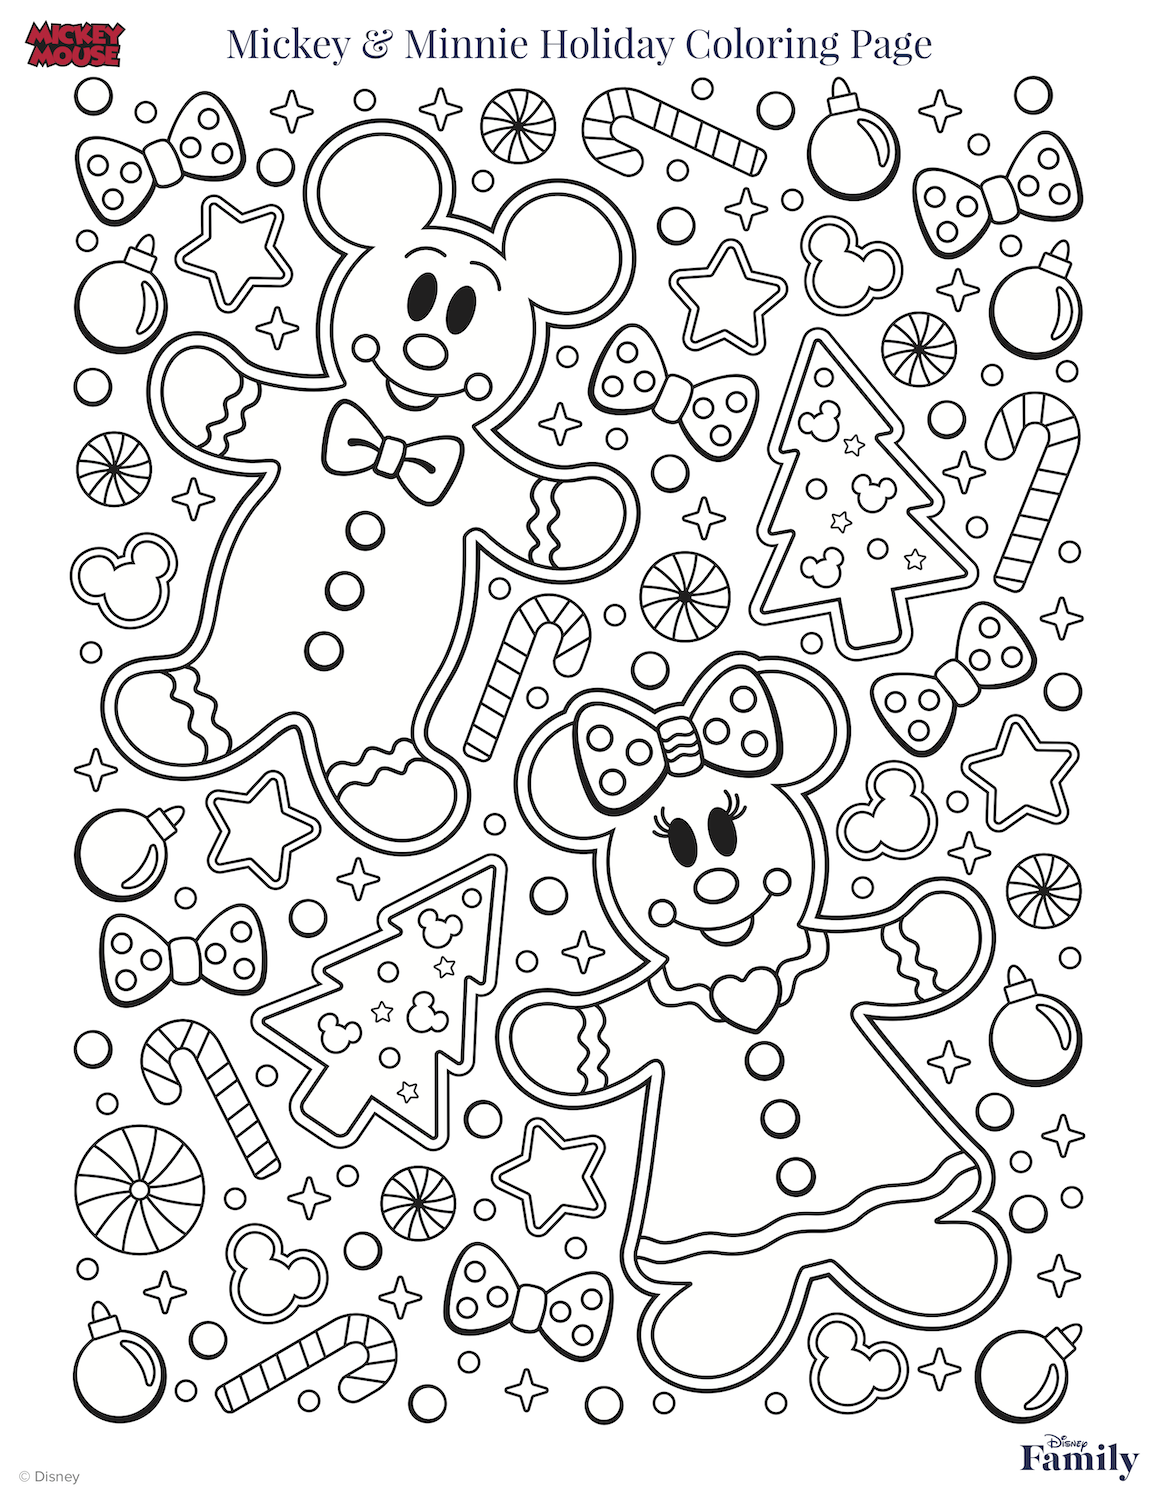 Mickey Christmas Coloring Page Kids Christmas Coloring Pages Mickey Mouse Coloring Pages Christmas Coloring Pages